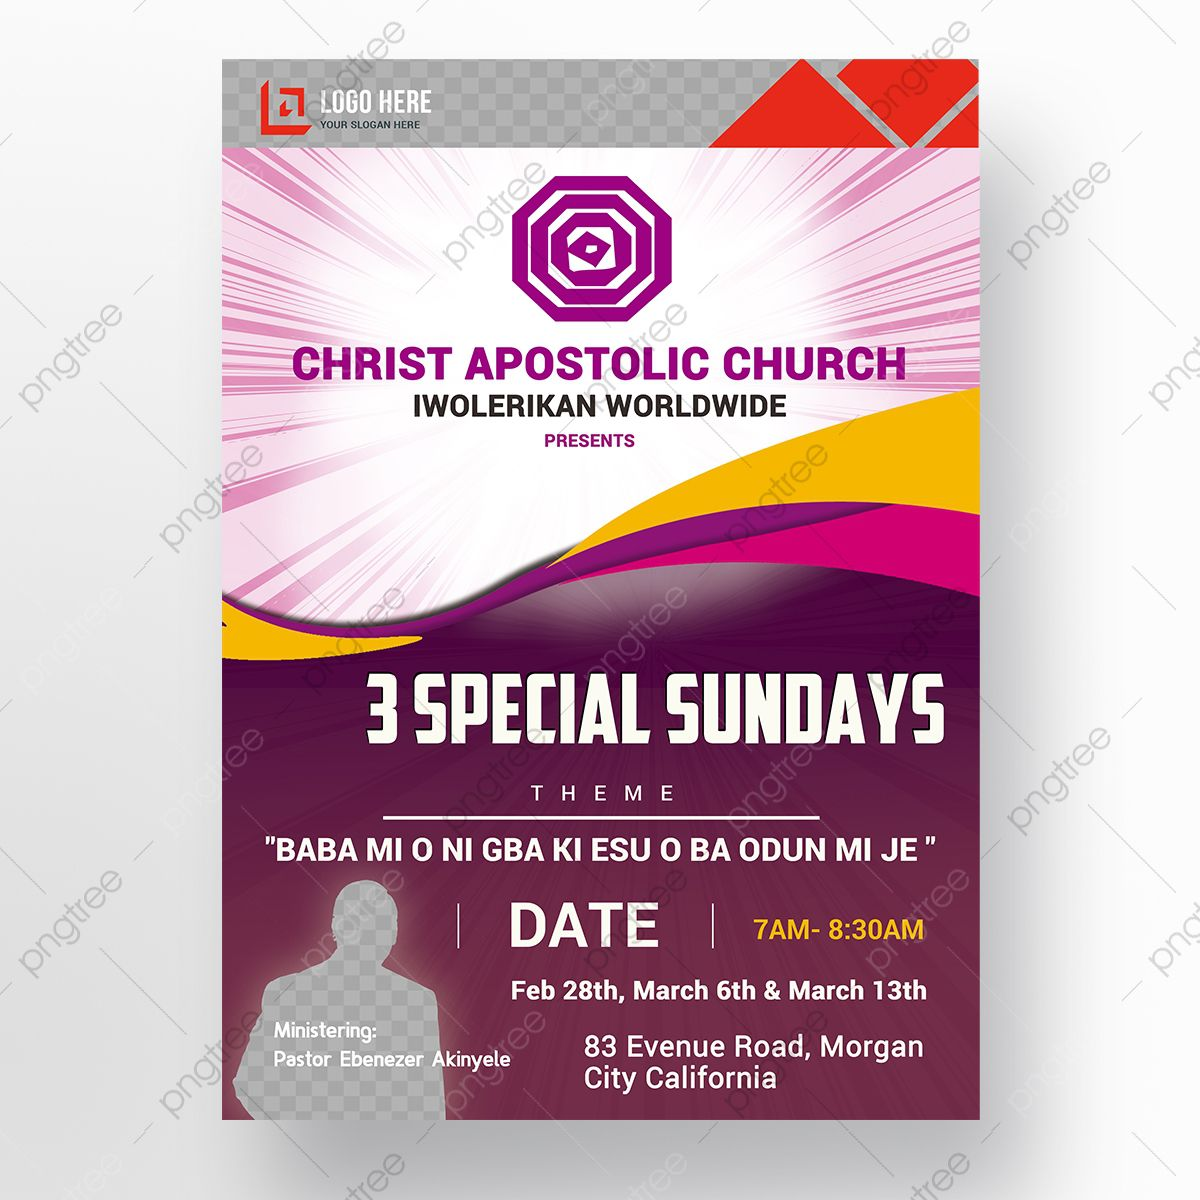 009 Wondrou Church Flyer Template Photoshop Free Picture  PsdFull